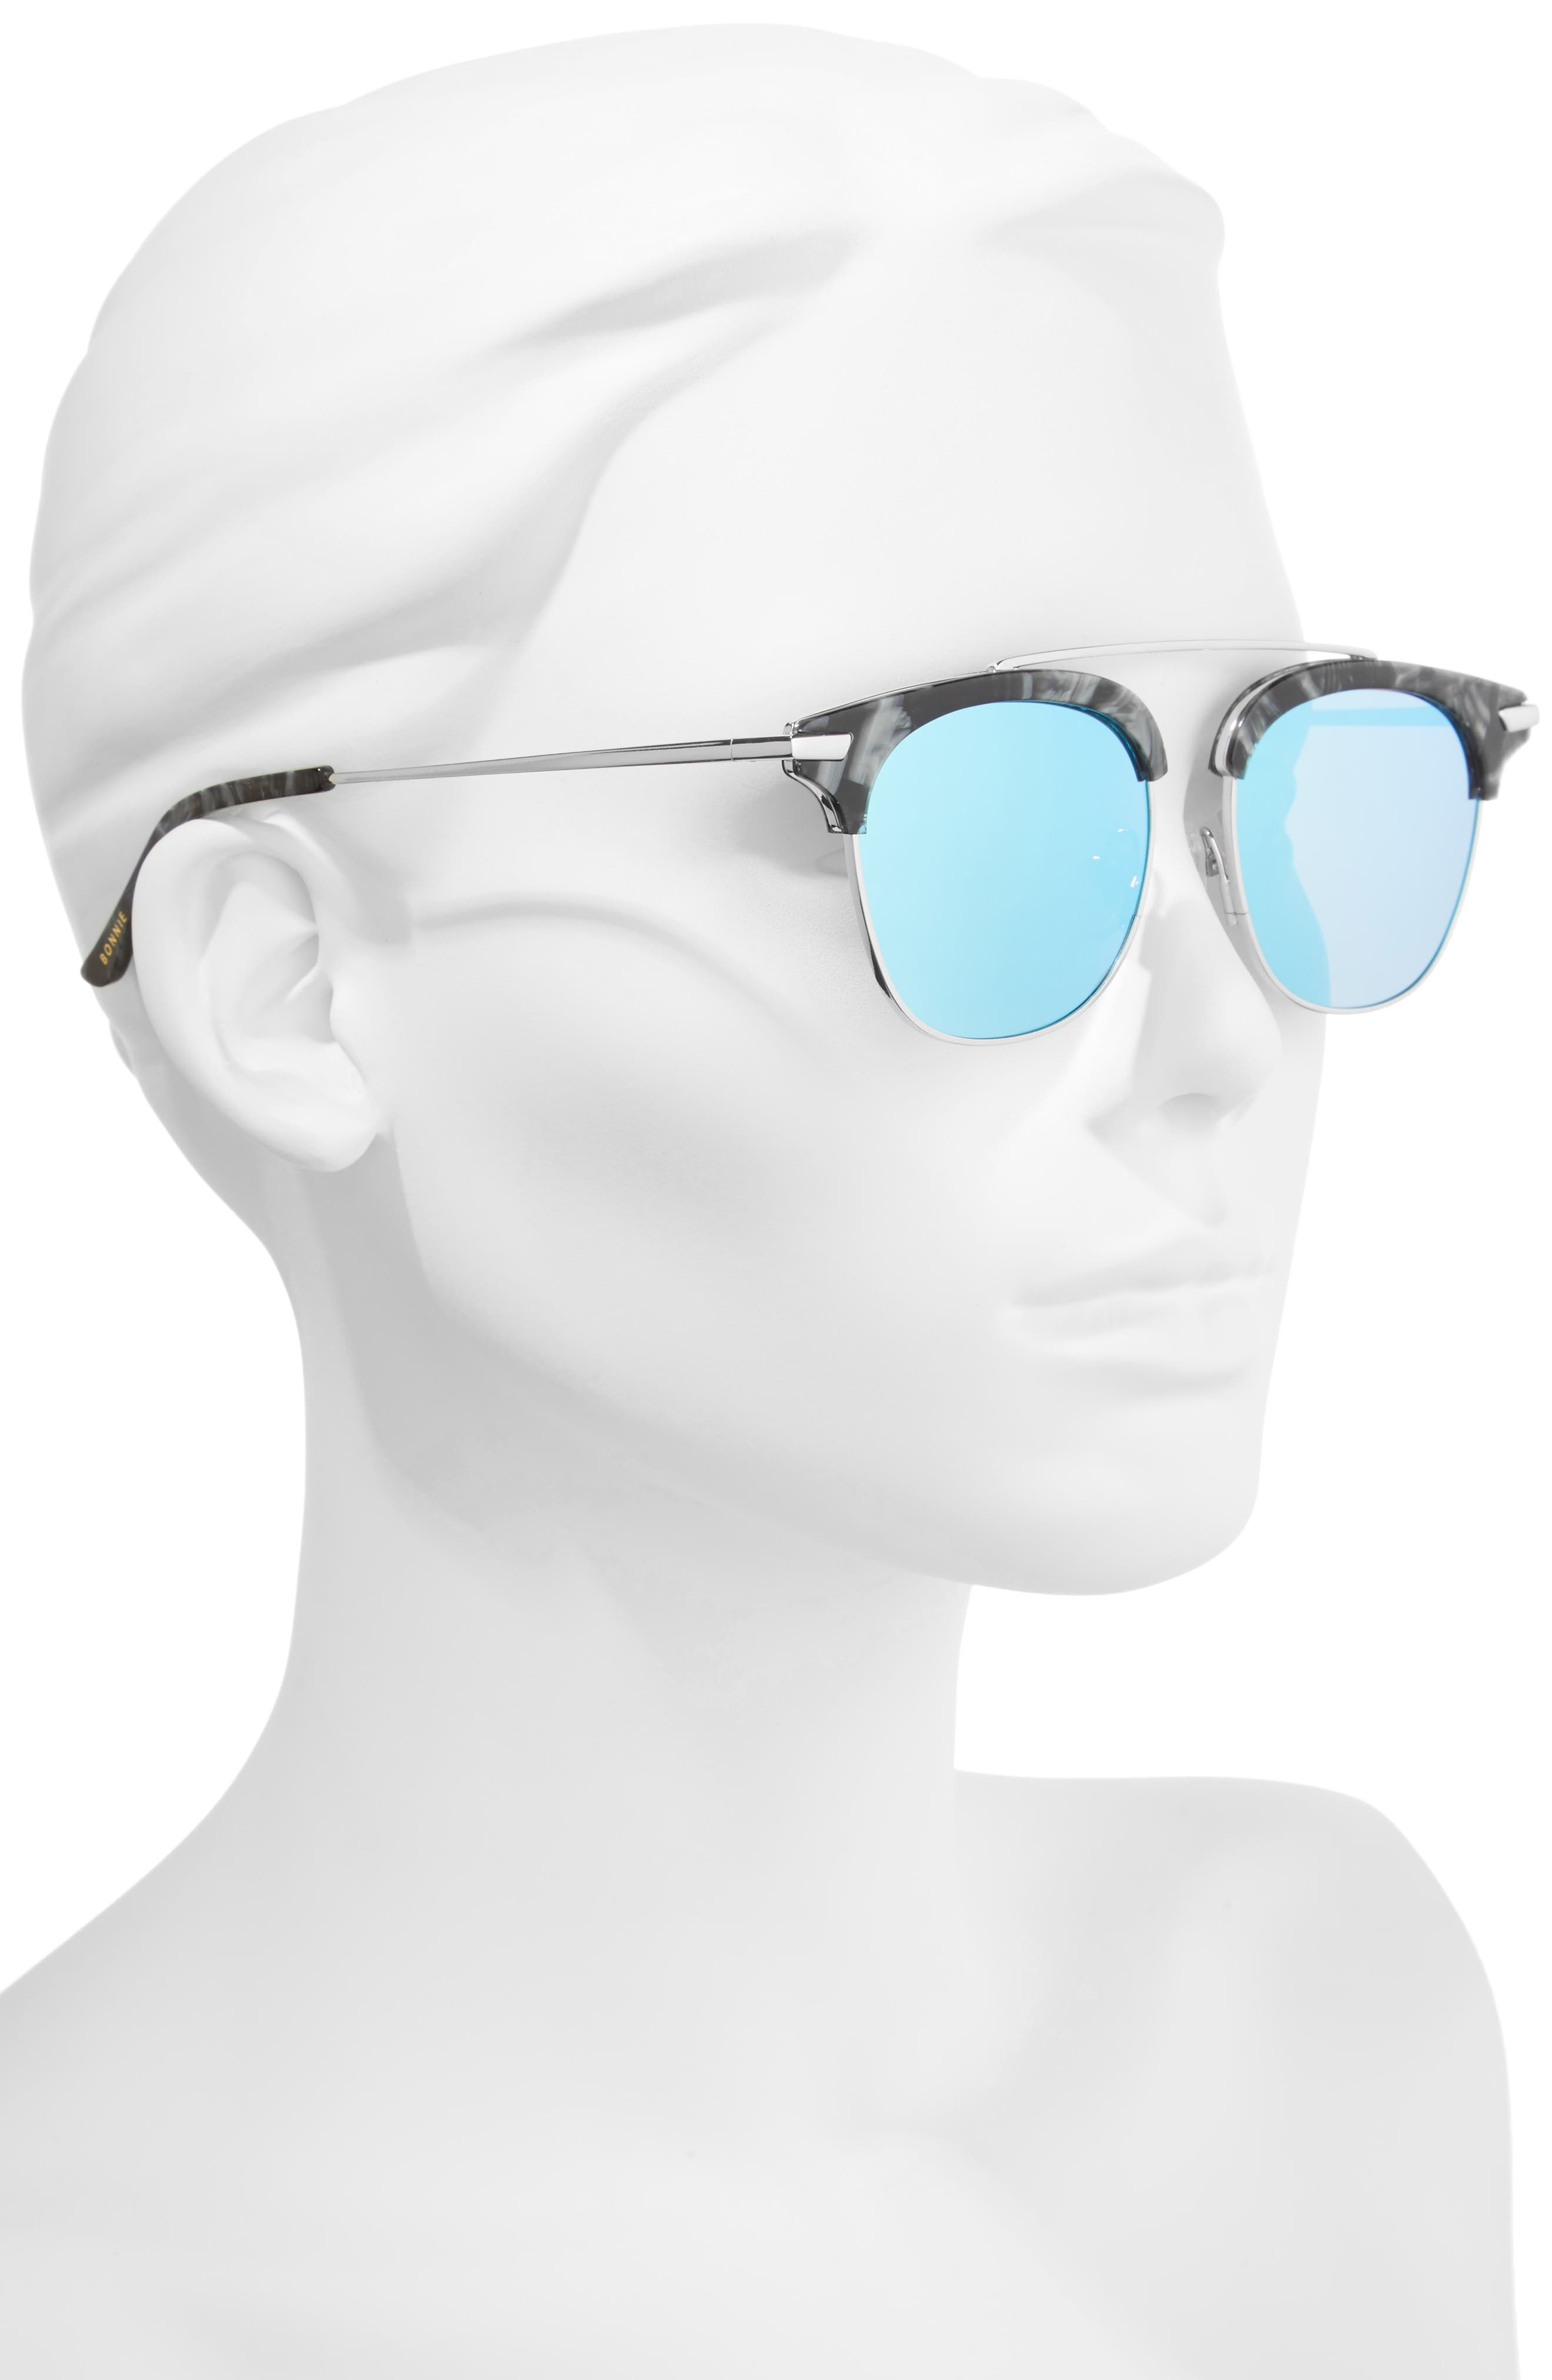 Midway 51mm Polarized Brow Bar Sunglasses,                             Alternate thumbnail 2, color,                             BLUE